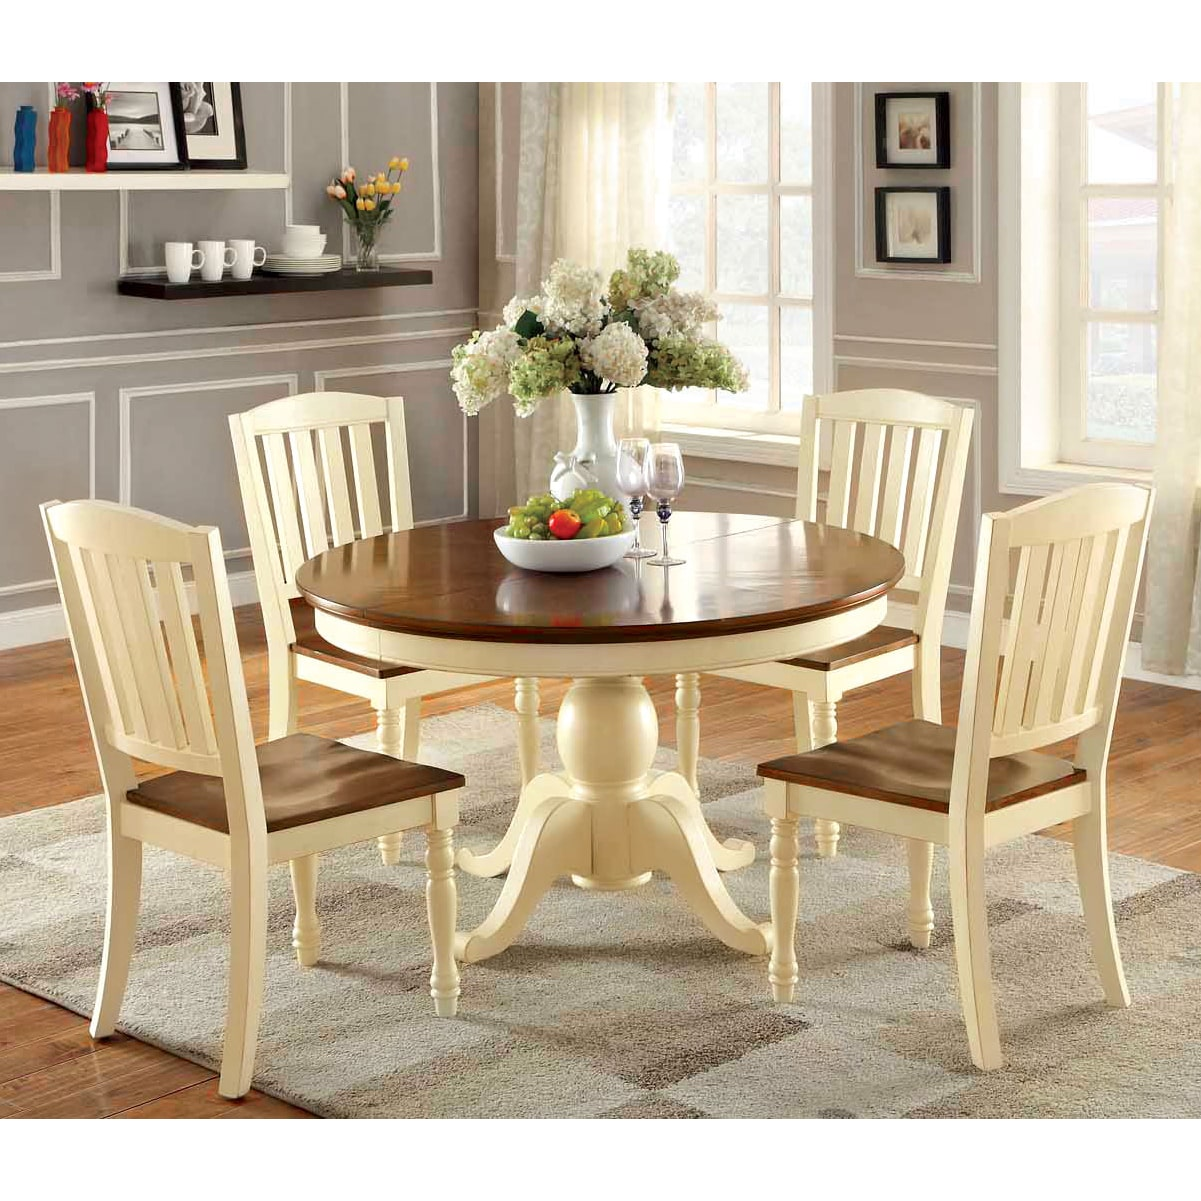 Furniture of America Bethannie 5 Piece Cottage Style Oval Dining Set